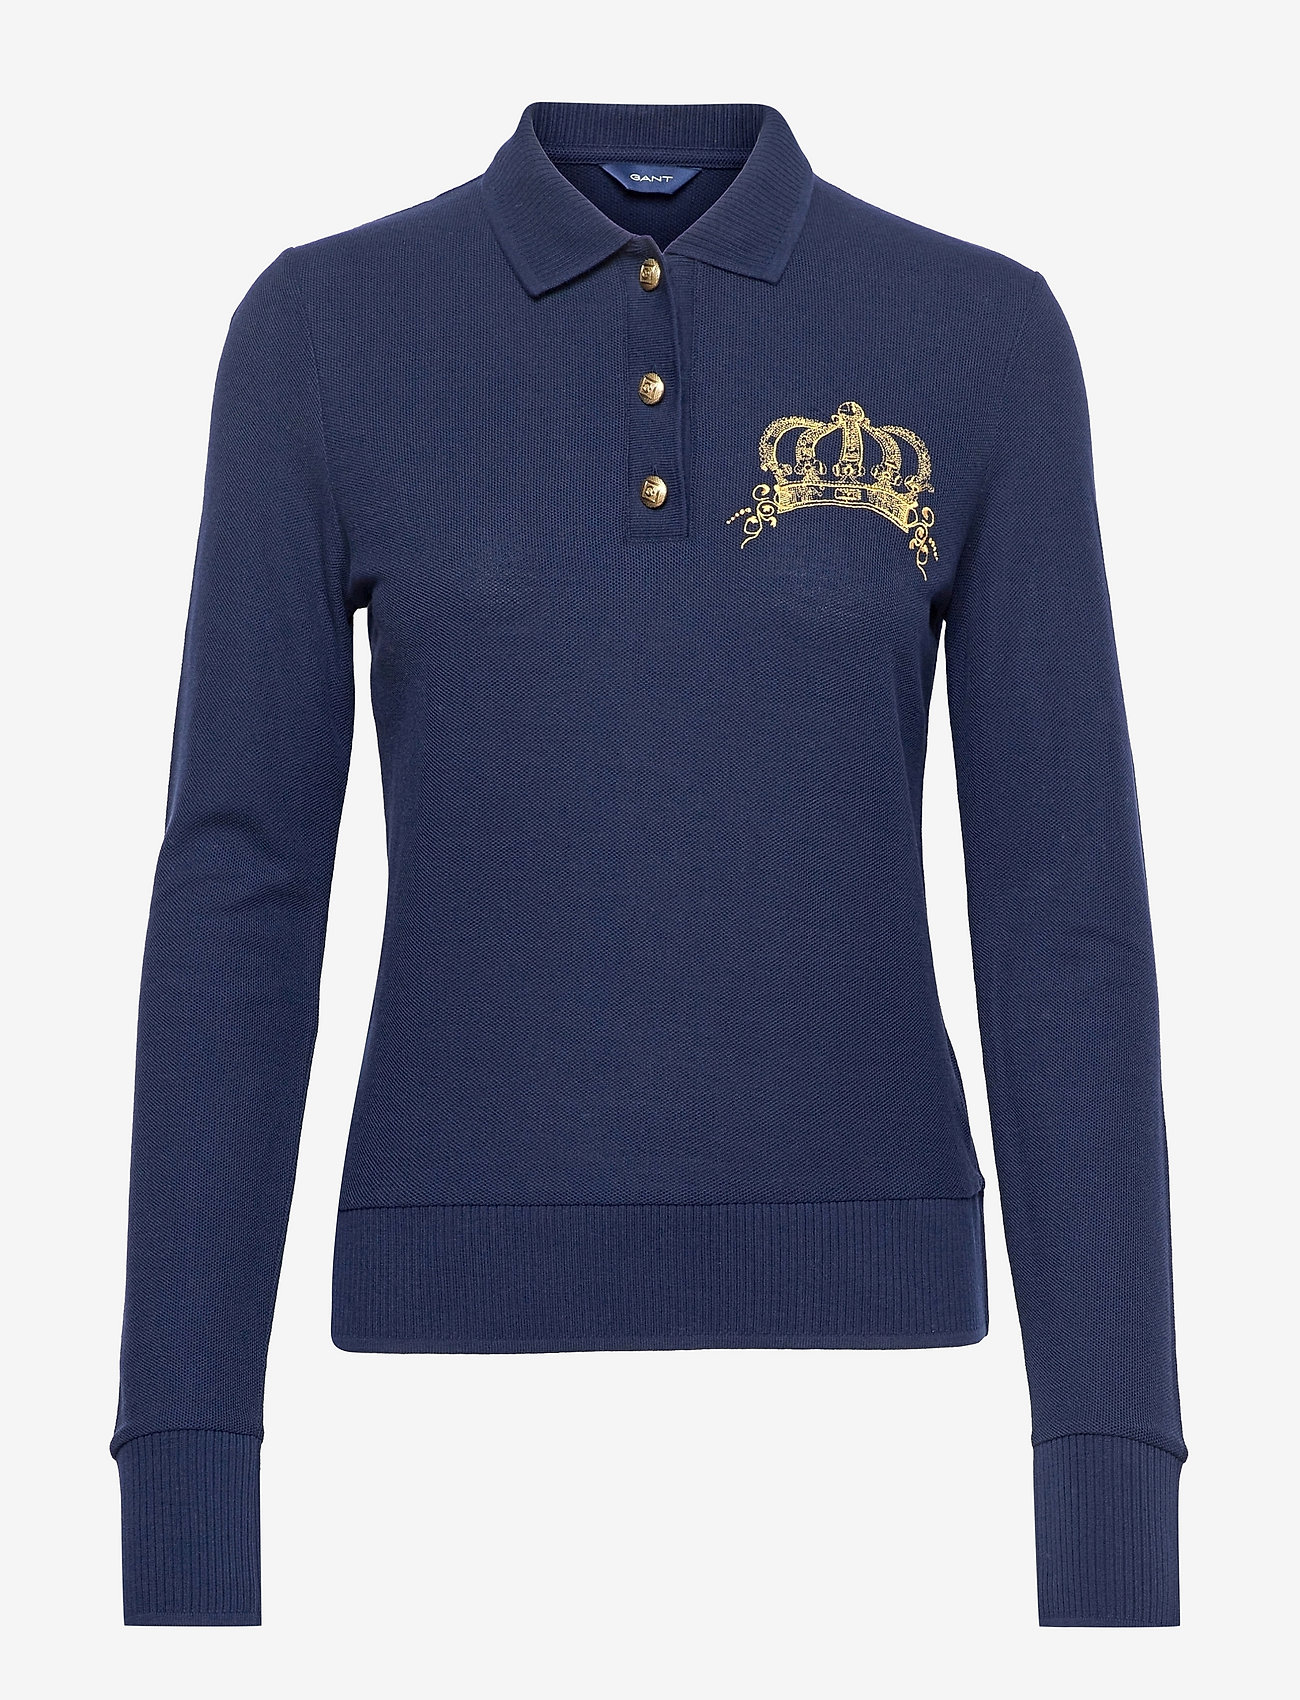 GANT - D1. CROWN EMBROIDERY POLO PIQUE - t-shirt & tops - evening blue - 0